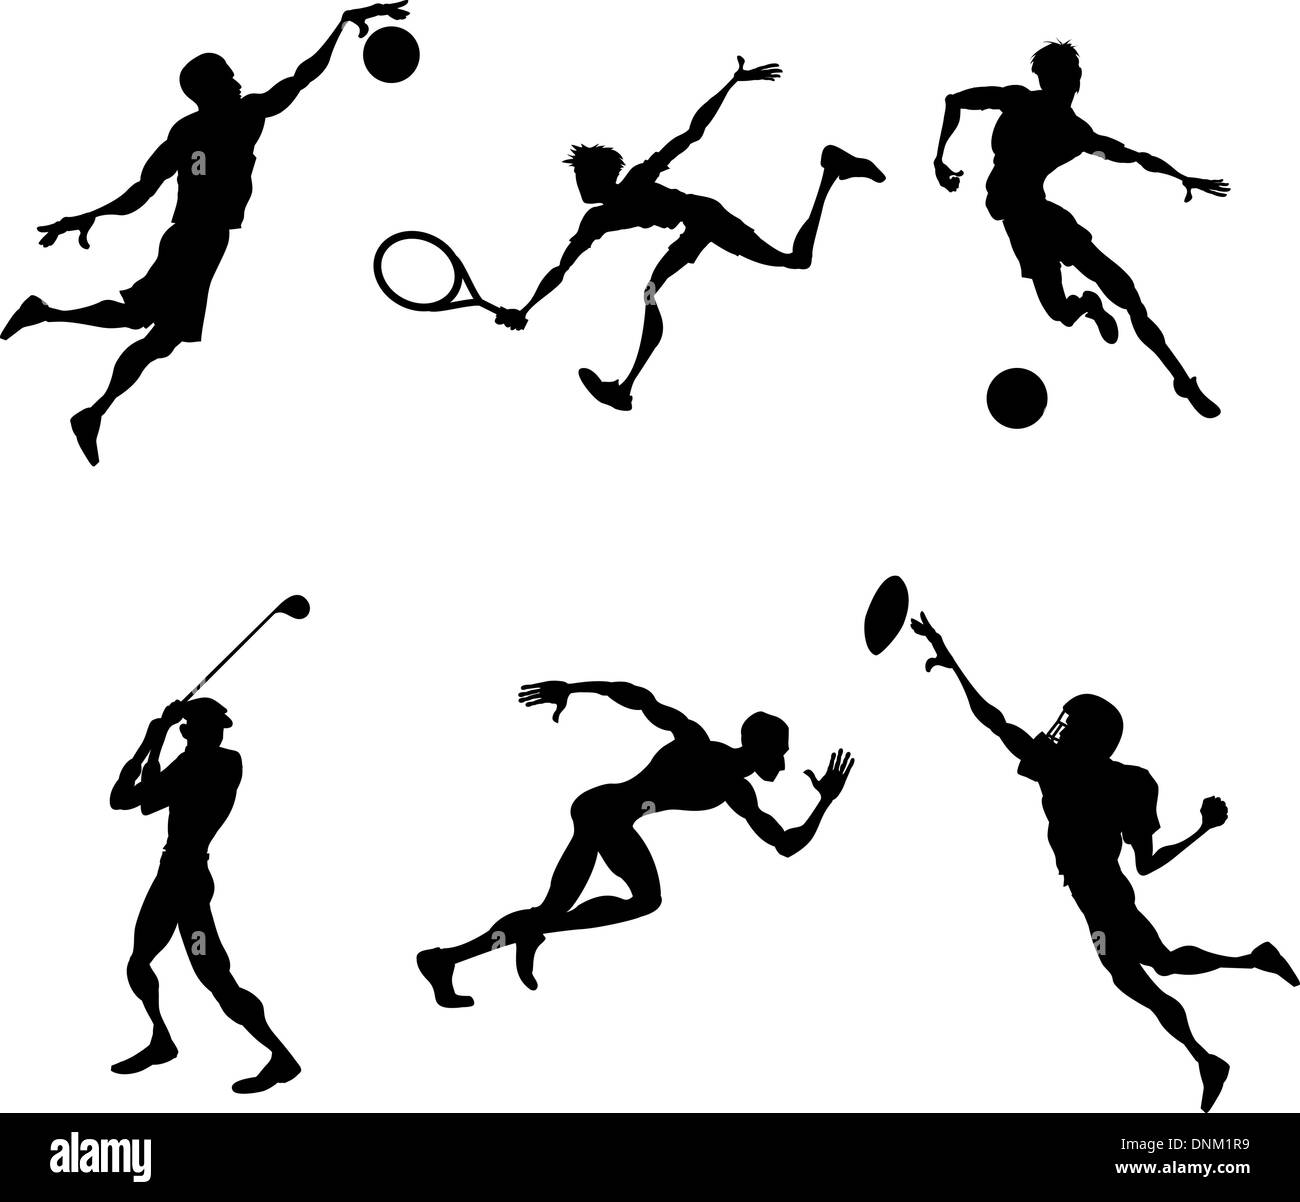 A set of stylised Sports players silhouettes - Stock Image